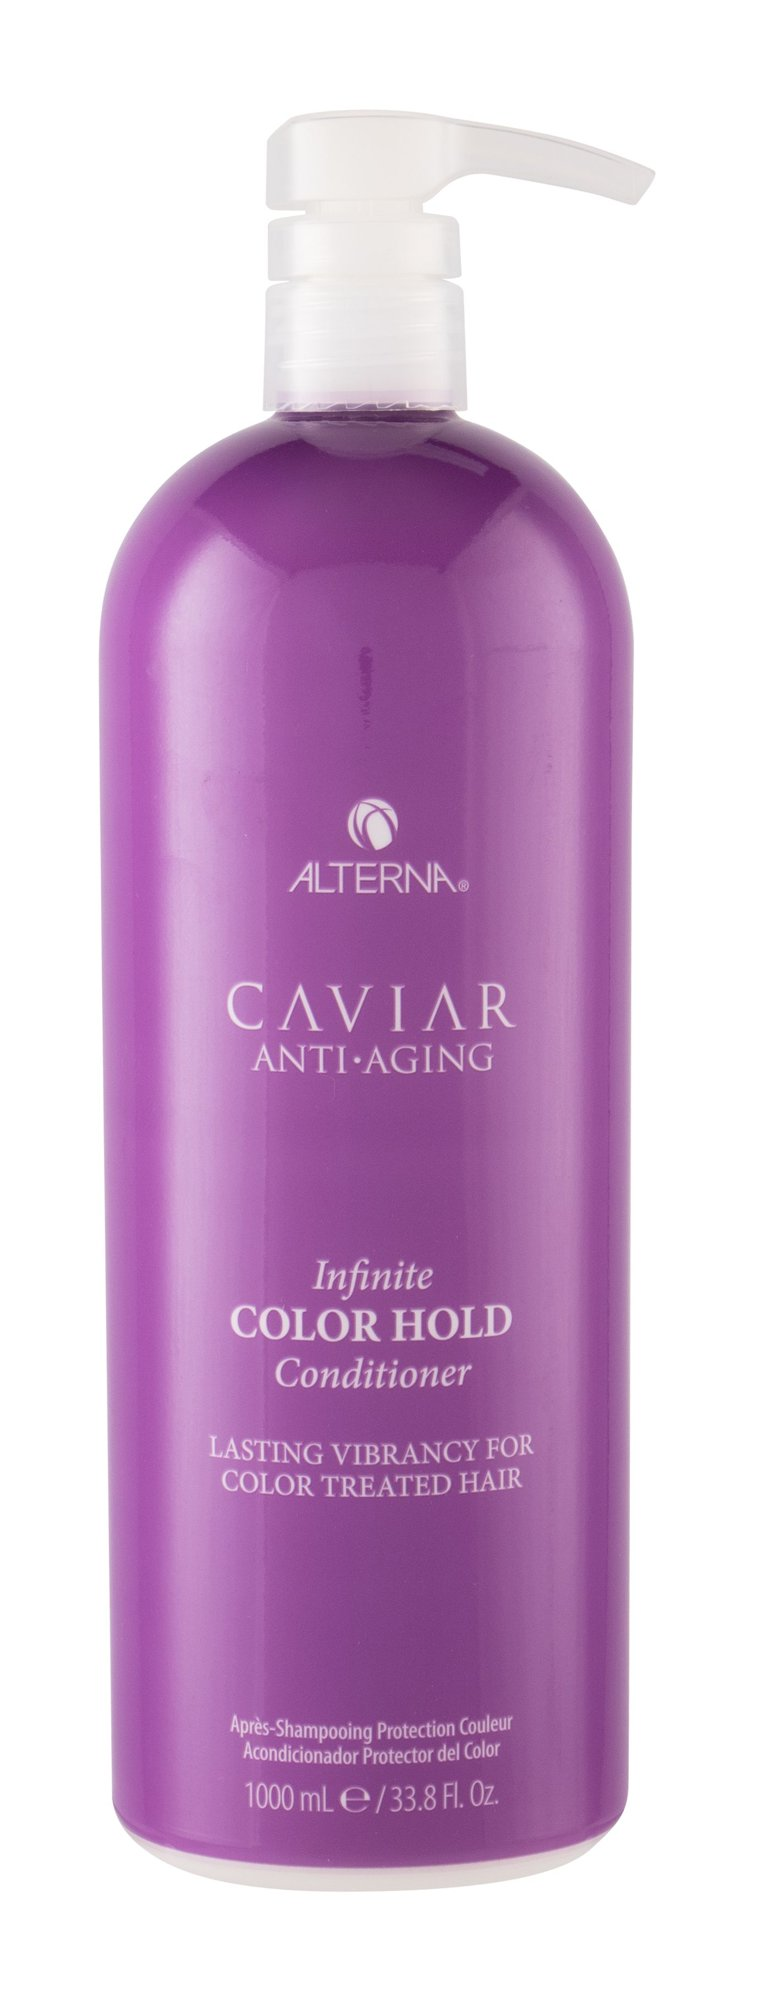 Alterna Caviar Anti-Aging Conditioner 1000ml